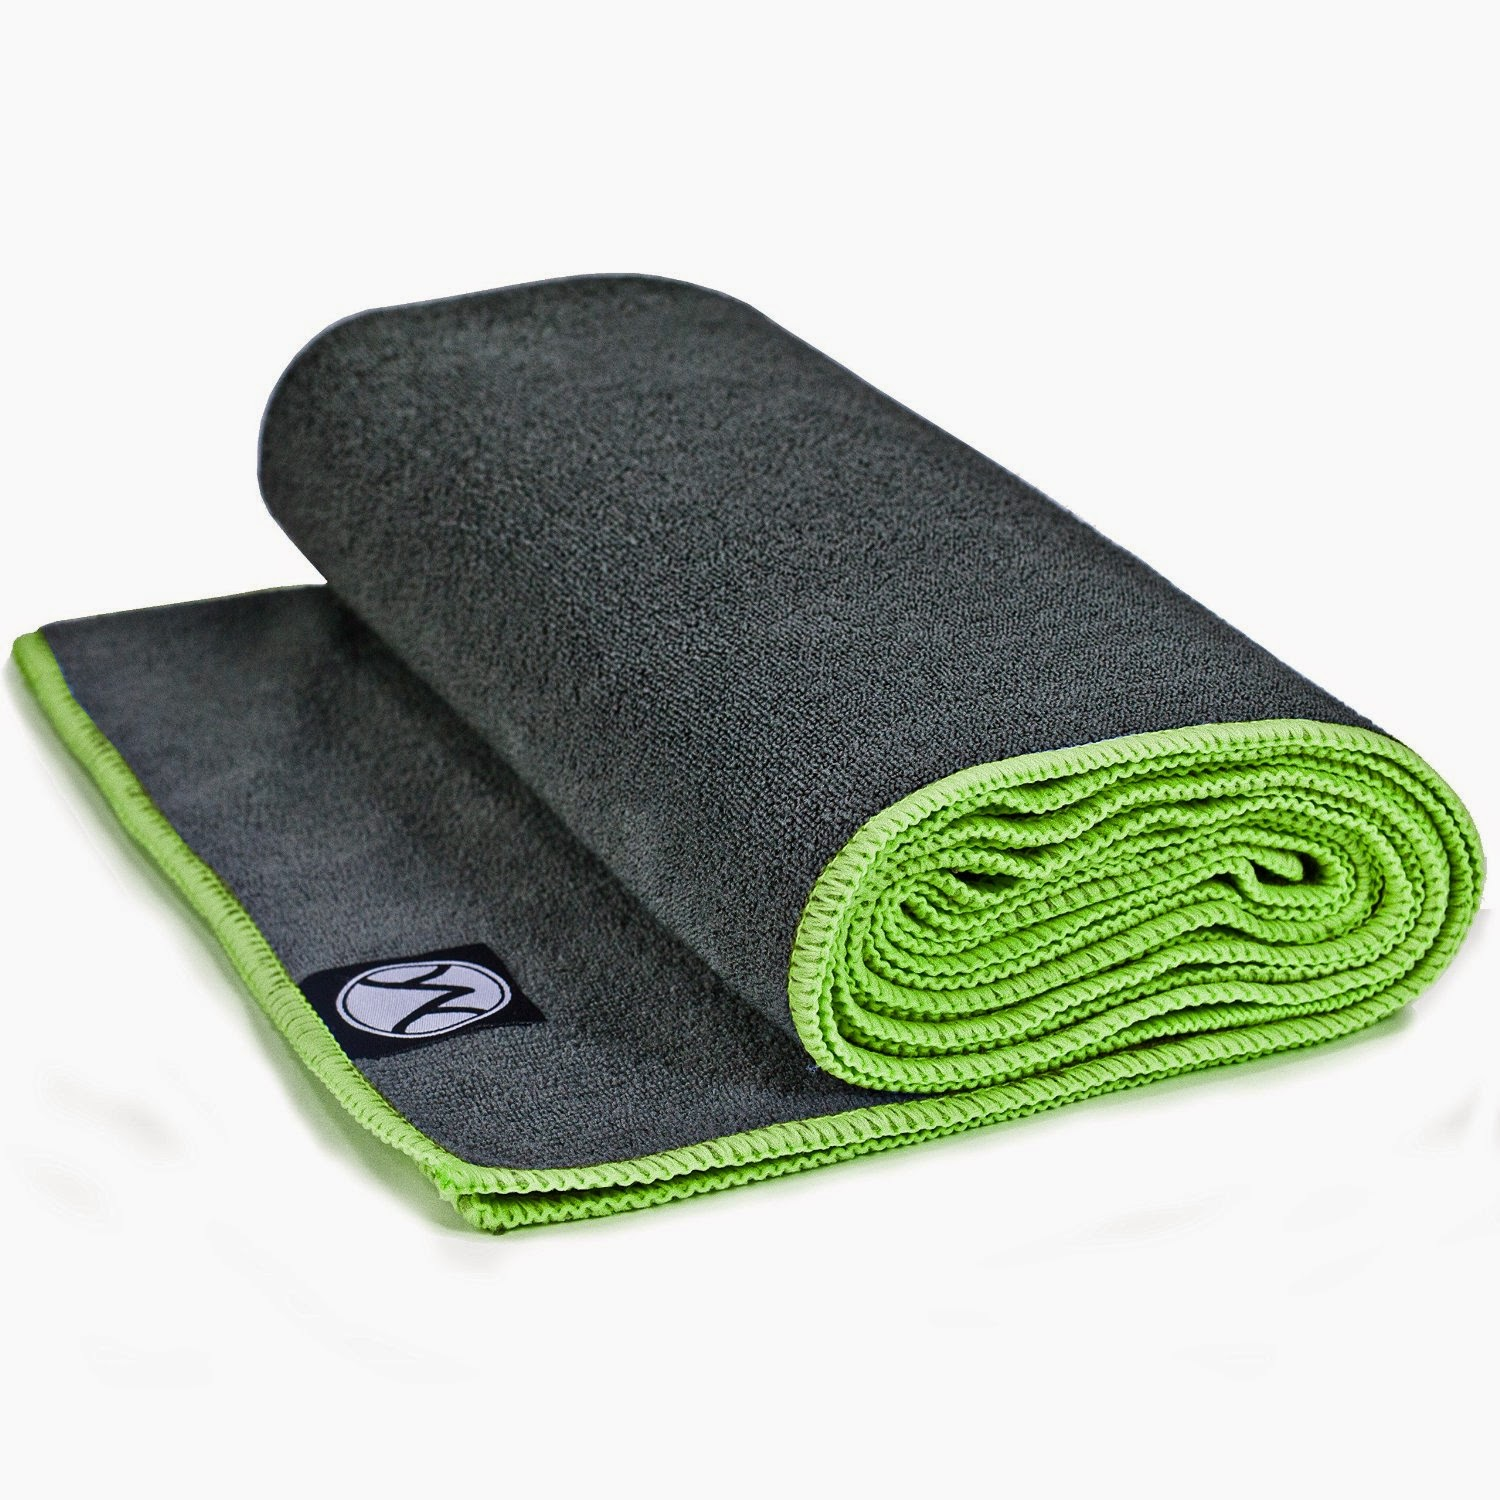 http://www.amazon.com/youphoria-yoga-towel-microfiber-satisfaction/dp/b00j5ls02u/ref=sr_1_1?ie=utf8&qid=1406157132&sr=8-1&keywords=youphoria